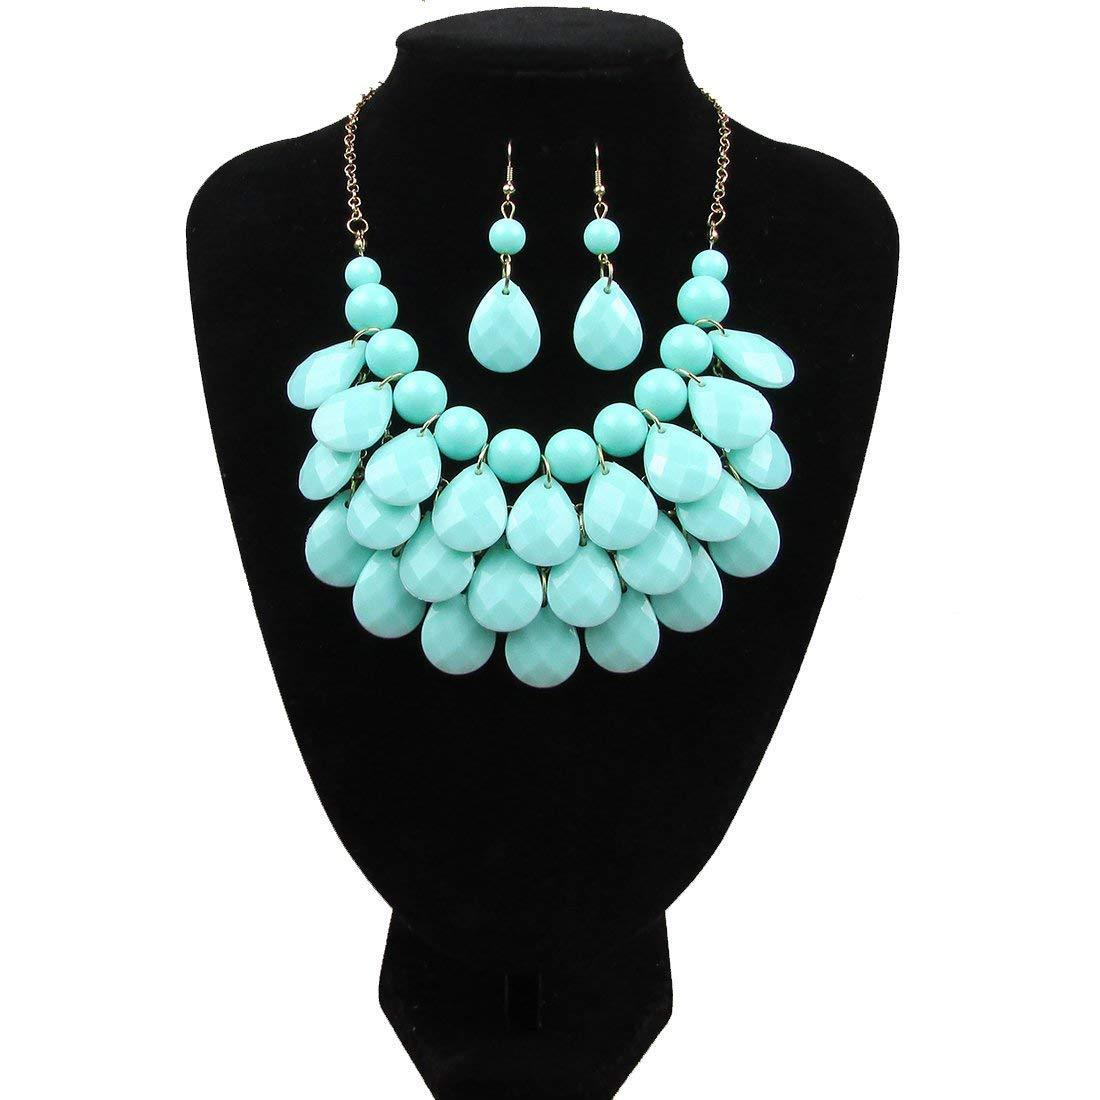 Long Multi Layered Metallic// Teal// Turquoise Coloured Acrylic Bead Necklace With